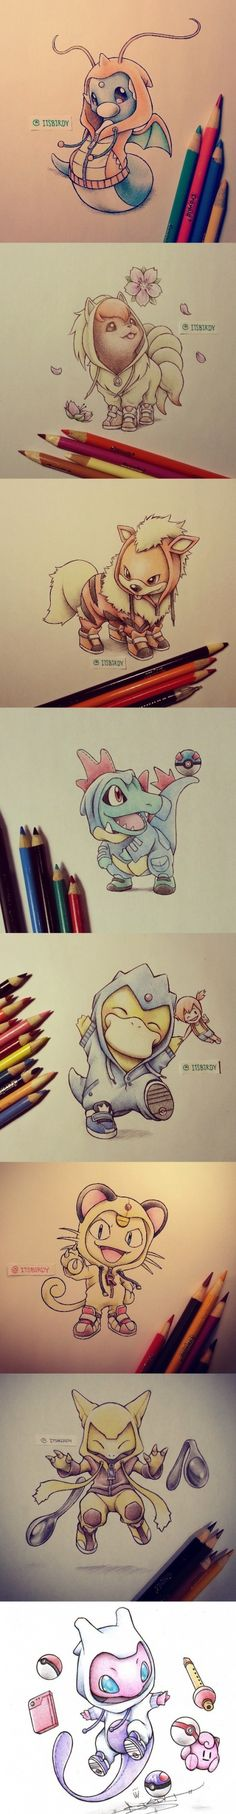 Pokemon in Onesies PART II by itsbirdy http://instagram.com/itsbirdy/# (Cute Cool Pics)